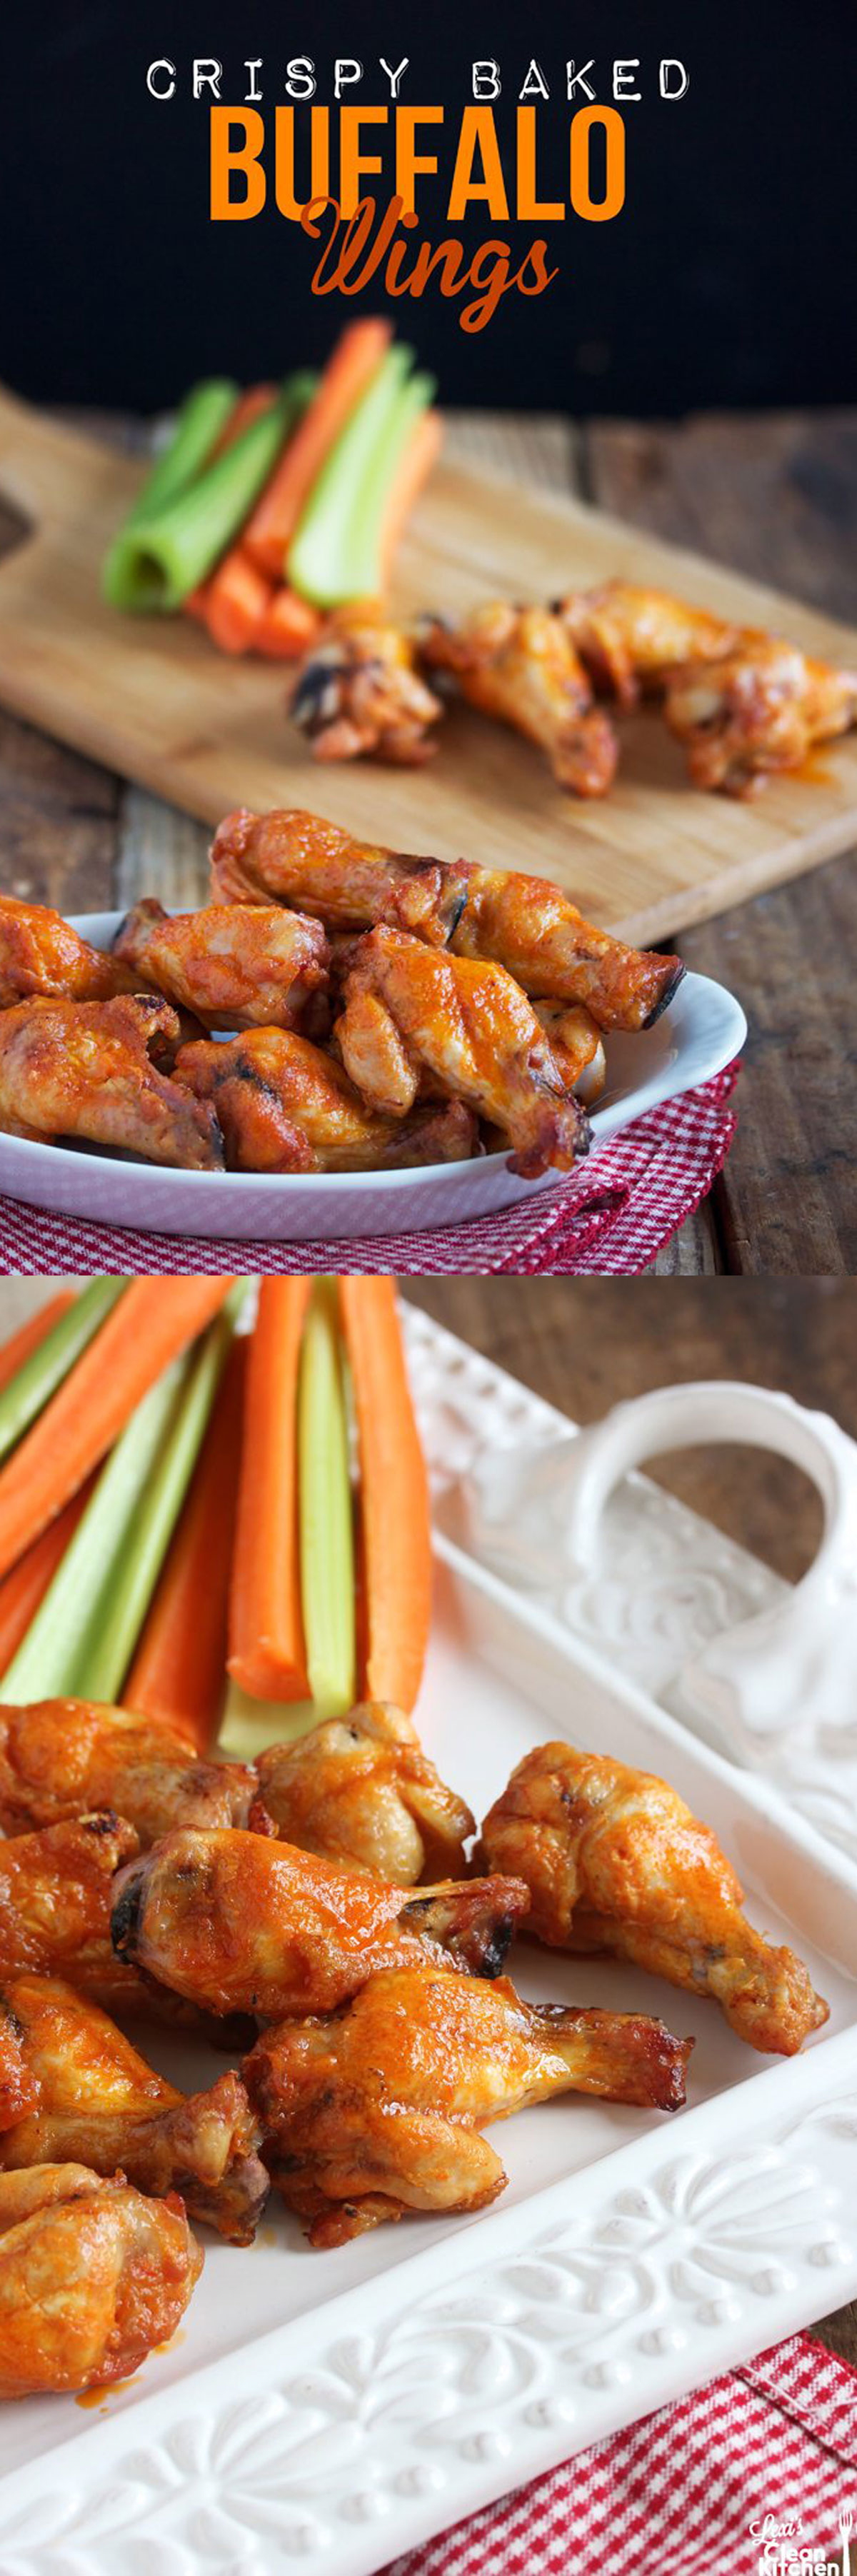 Crispy Baked Buffalo Wings - Lexi's Clean Kitchen #glutenfree #wings #superbowl #buffalochicken